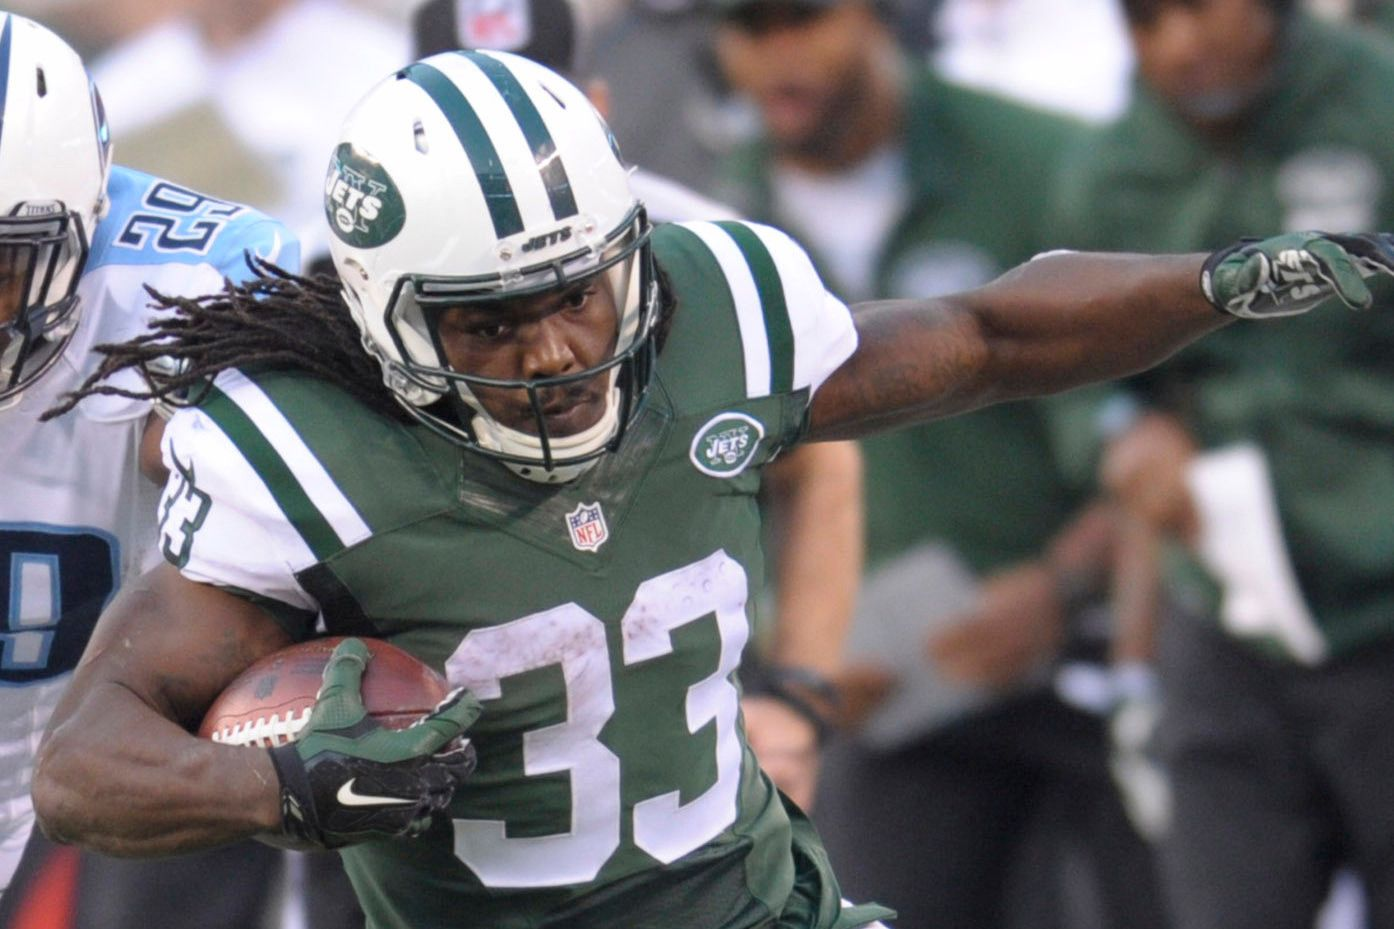 John Idzik doesn't get — or deserve — much credit for his two-year stint as the Jets' general manager, but one of his first moves continued to pay big dividends Sunday afternoon. Running back Chris...